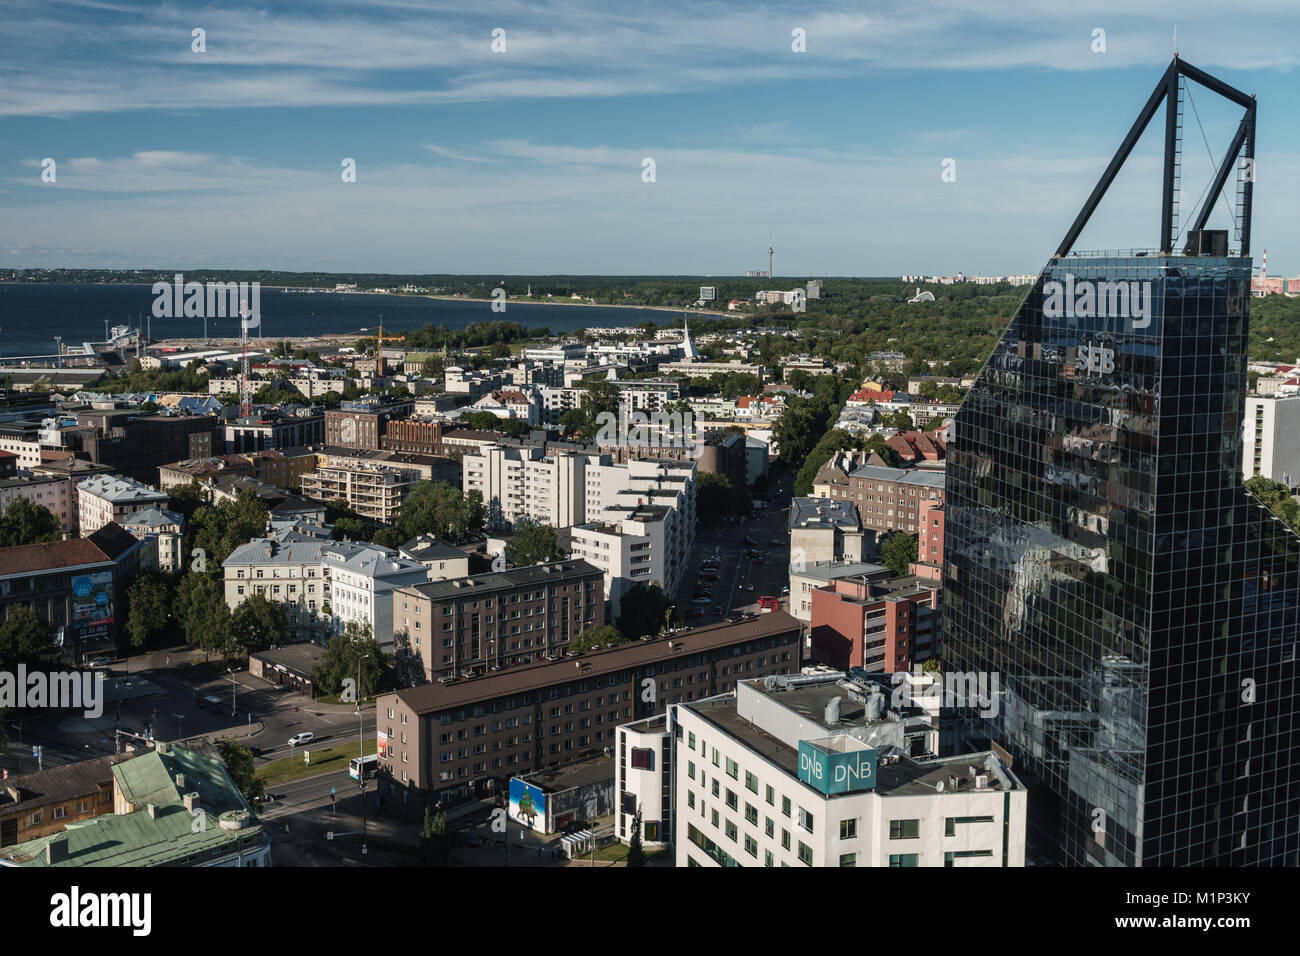 Cityscape of modern buildings and Baltic Sea, Tallinn, Estonia, Europe - Stock Image